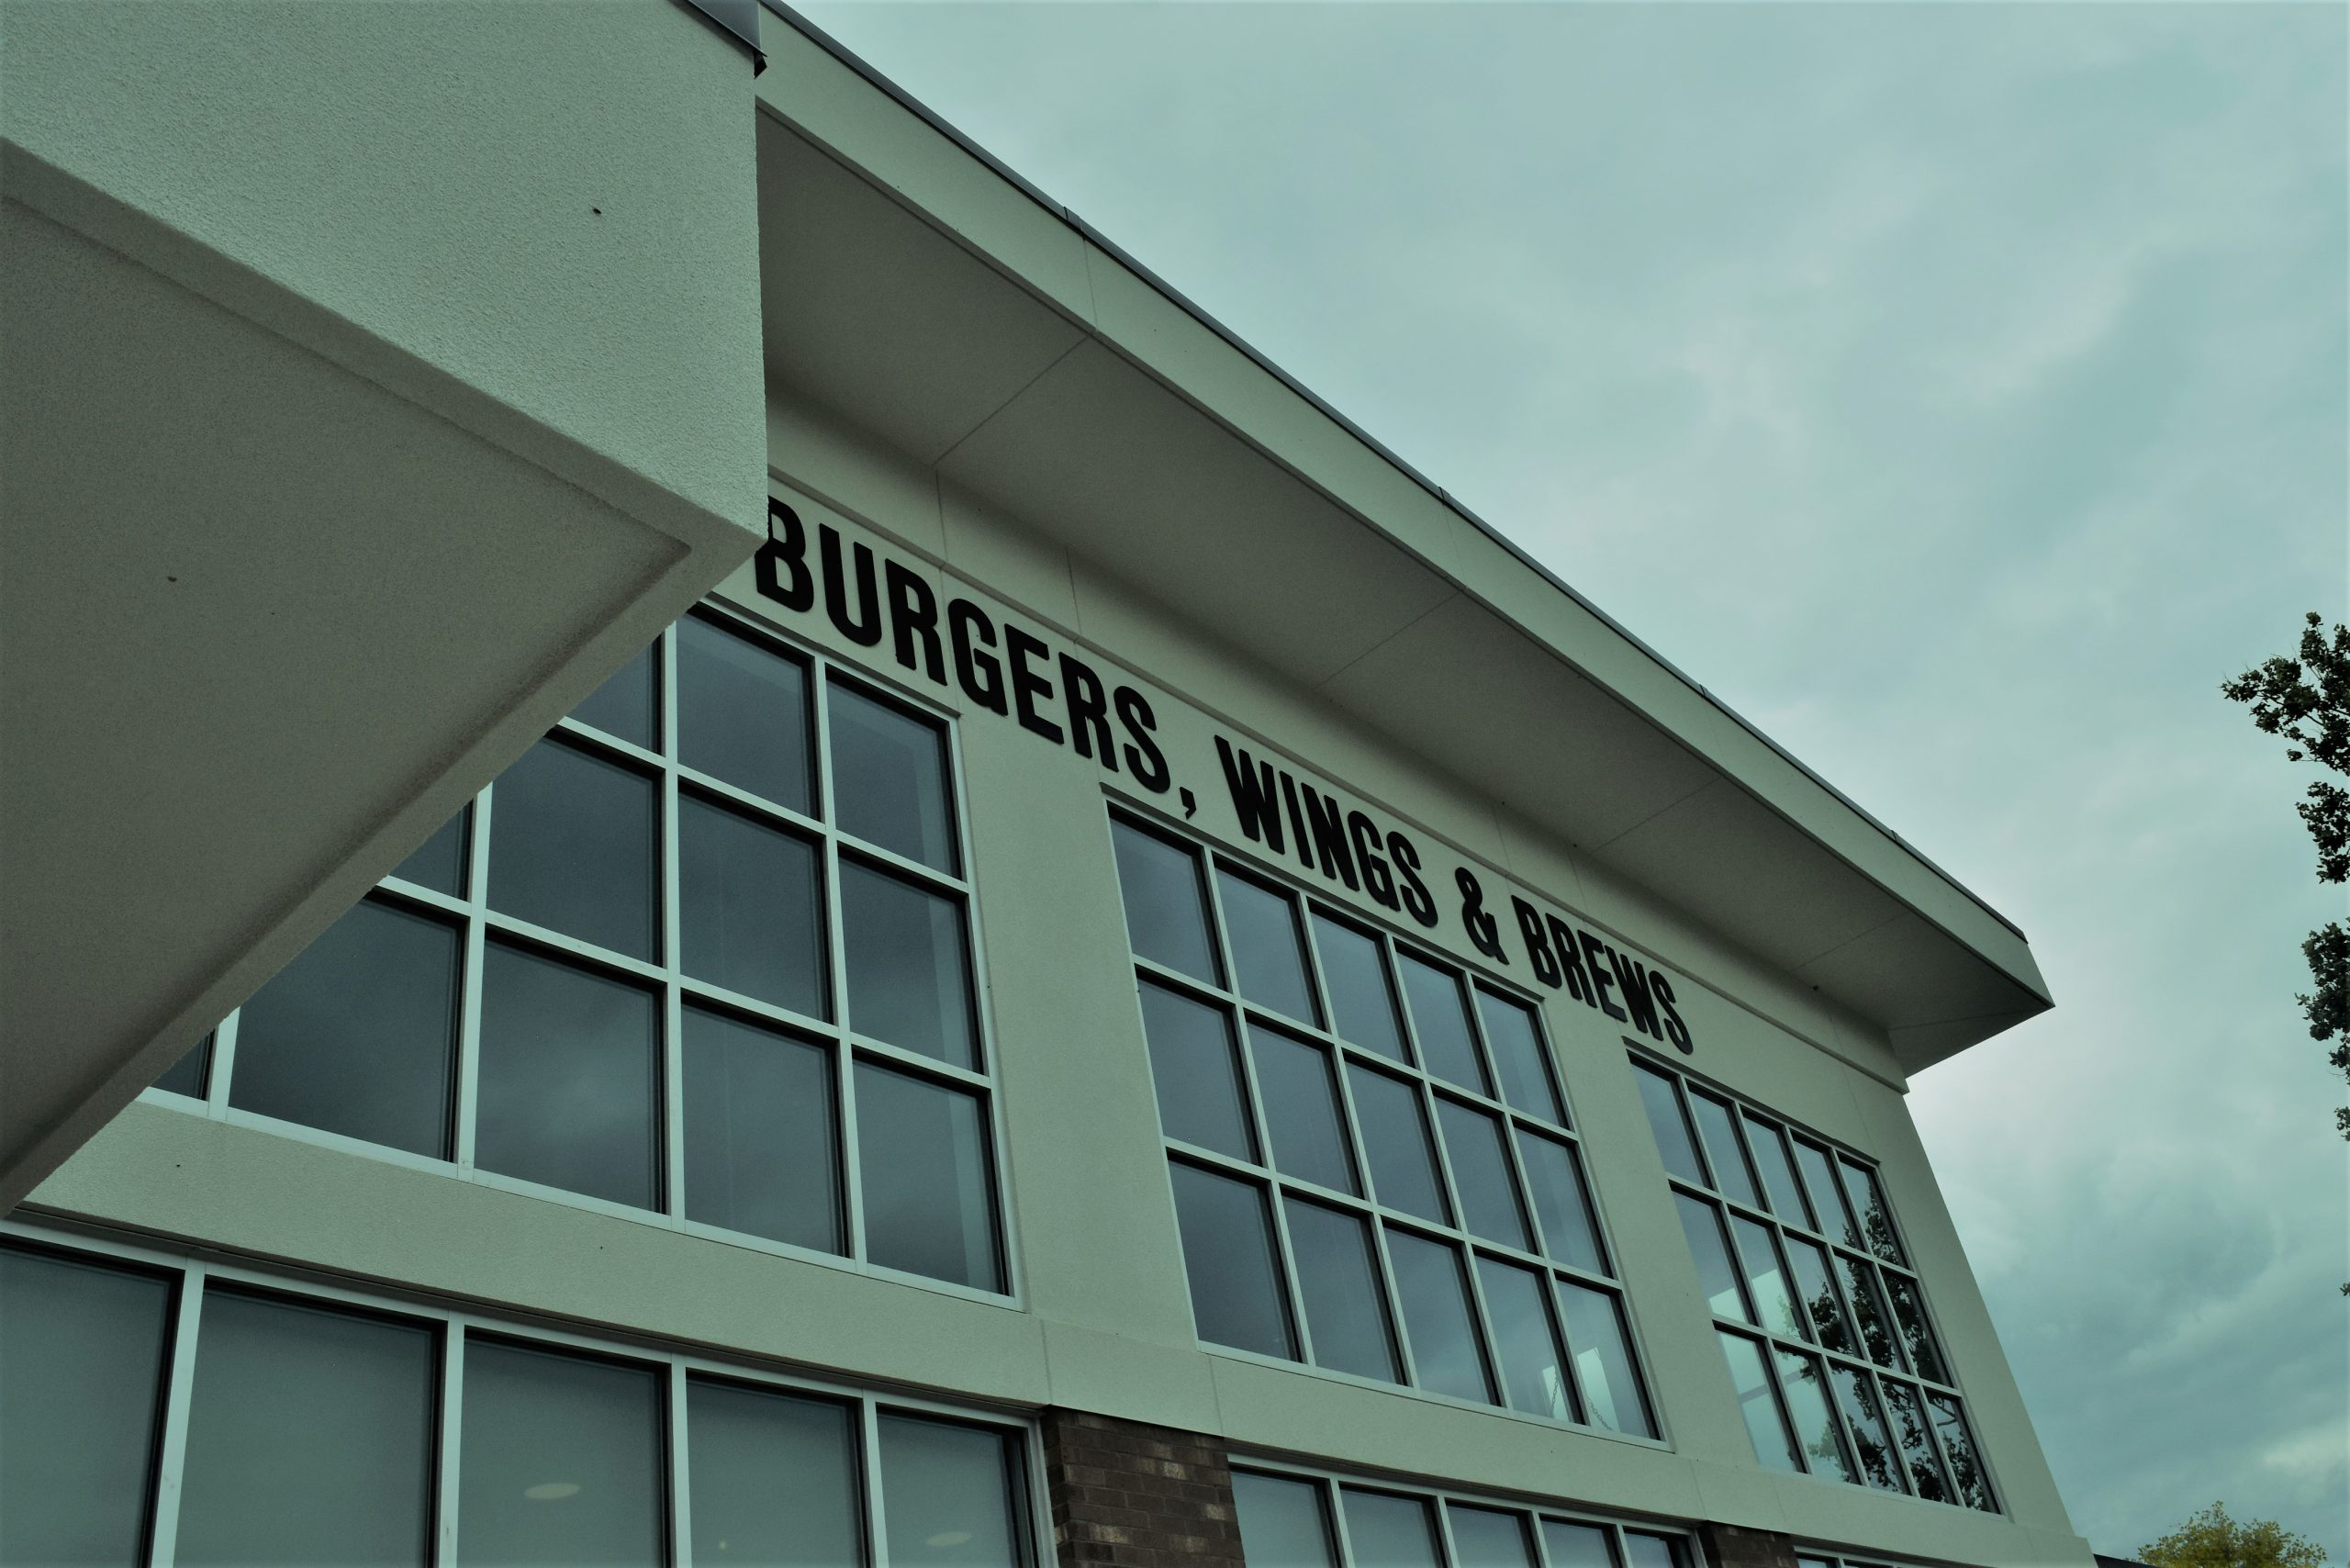 Burgers, Wings, and Brews sign on the side of the new Quaker Steak and Lube Restaurant